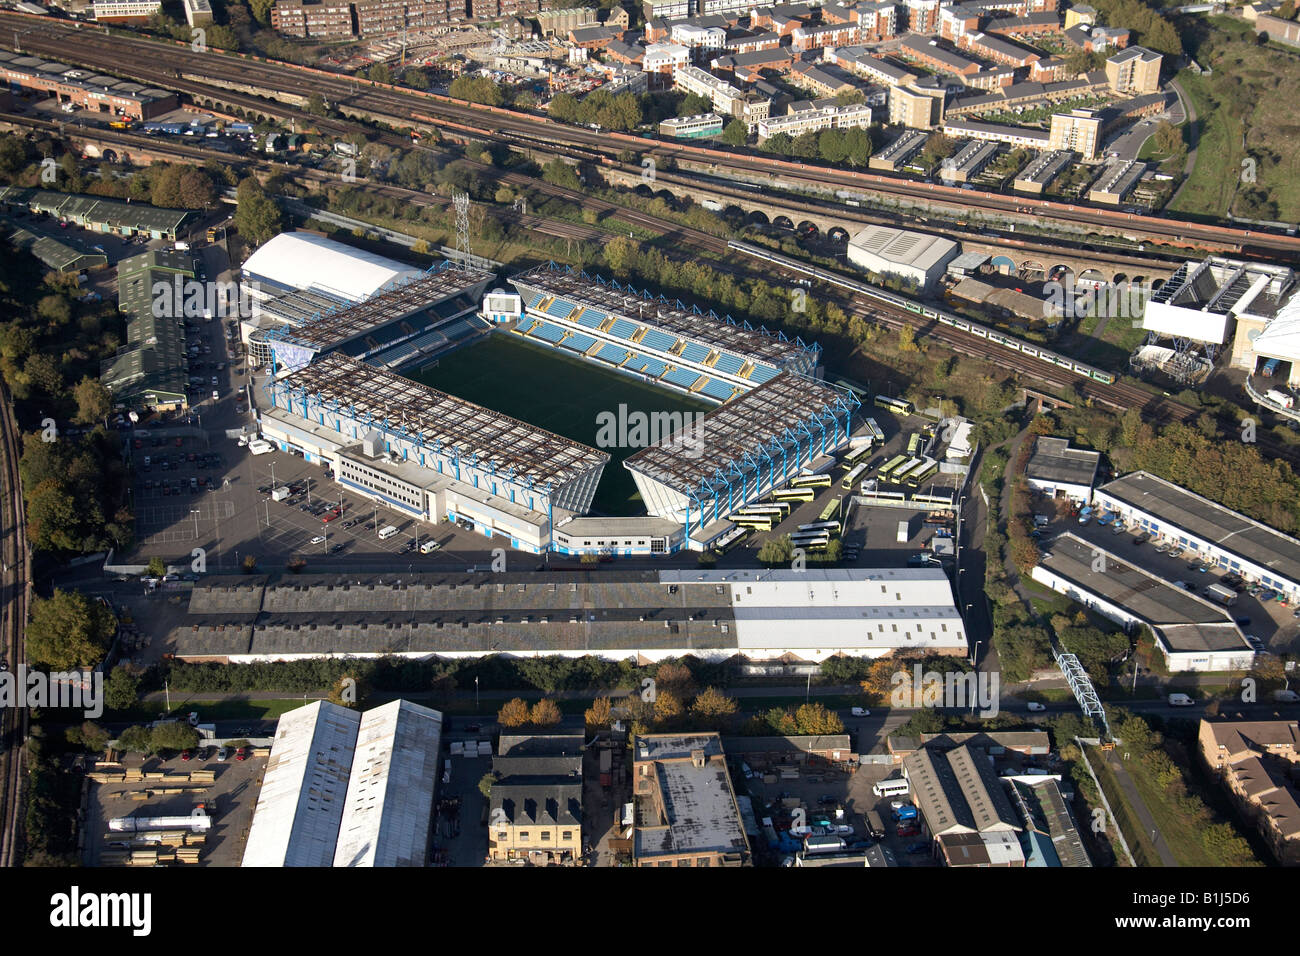 Aerial view north east of Millwall Football Ground South Bermondsey London SE16 England UK - Stock Image